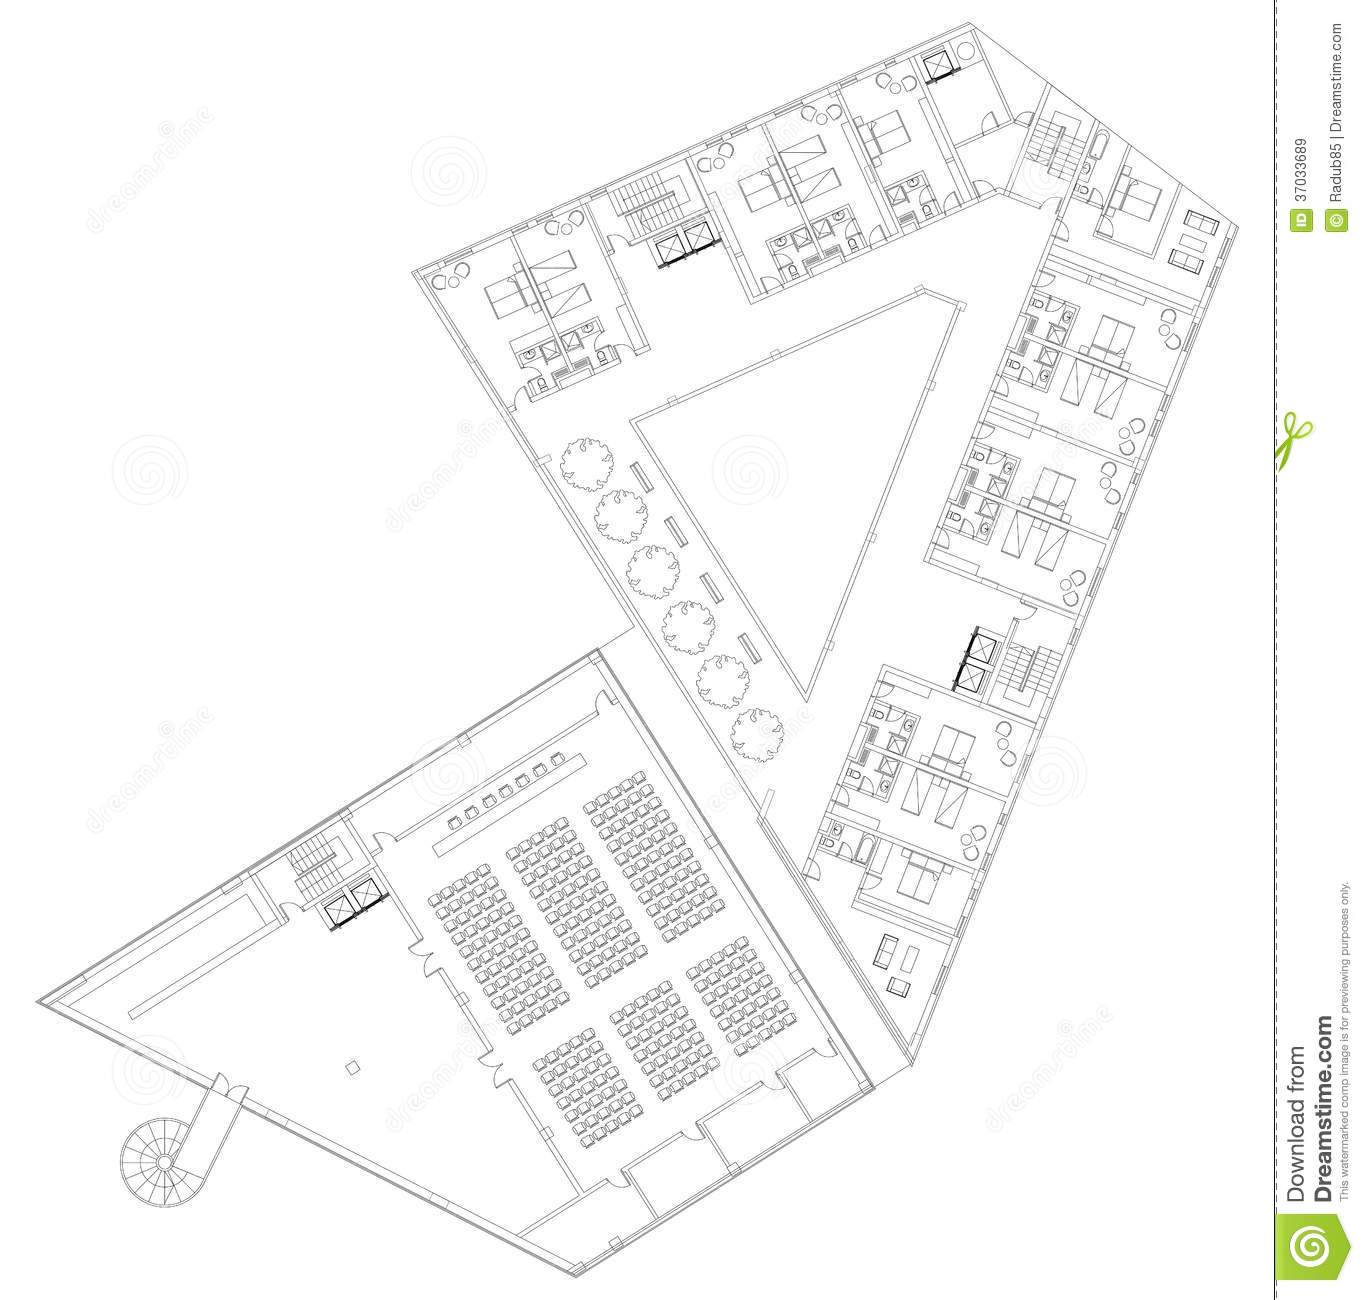 28 hotel floor plan images stock floor plan of island hotel floor plan images stock modern hotel floor architectural plan royalty free stock